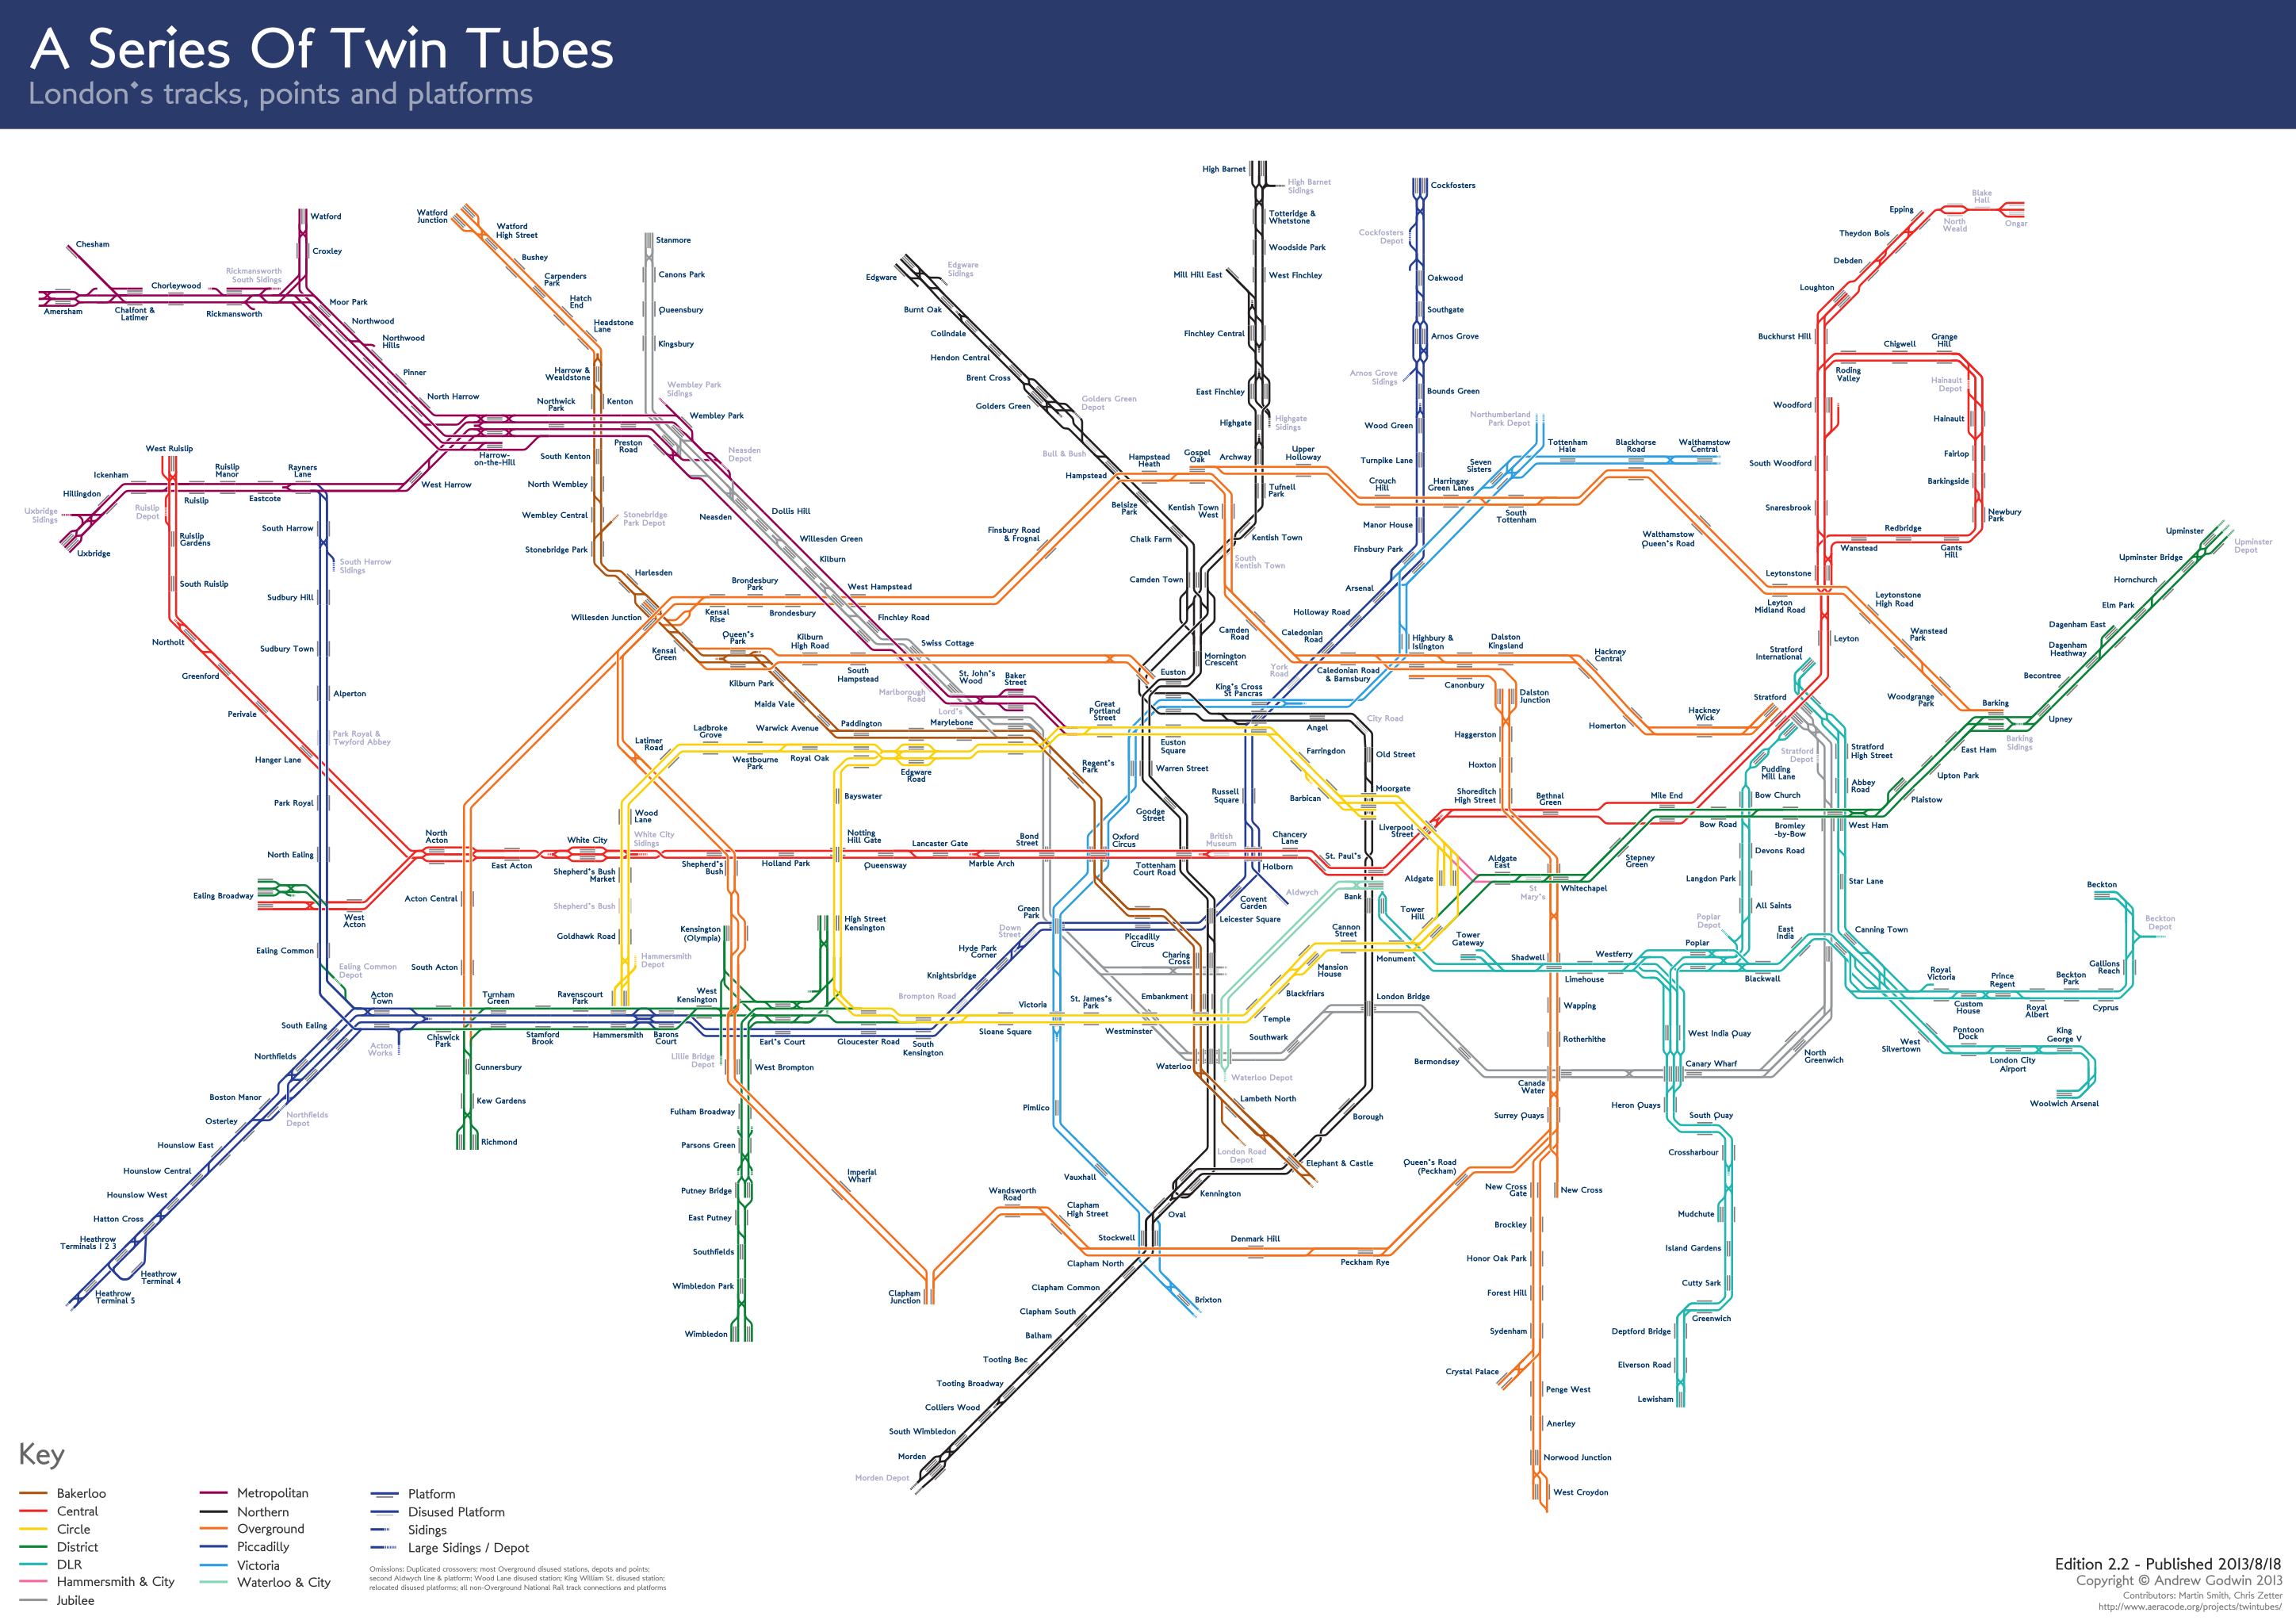 Twintubes v2g 28962048 maps pinterest london underground a non geographical map of the london underground showing the layout of the tracks platforms and points gumiabroncs Choice Image